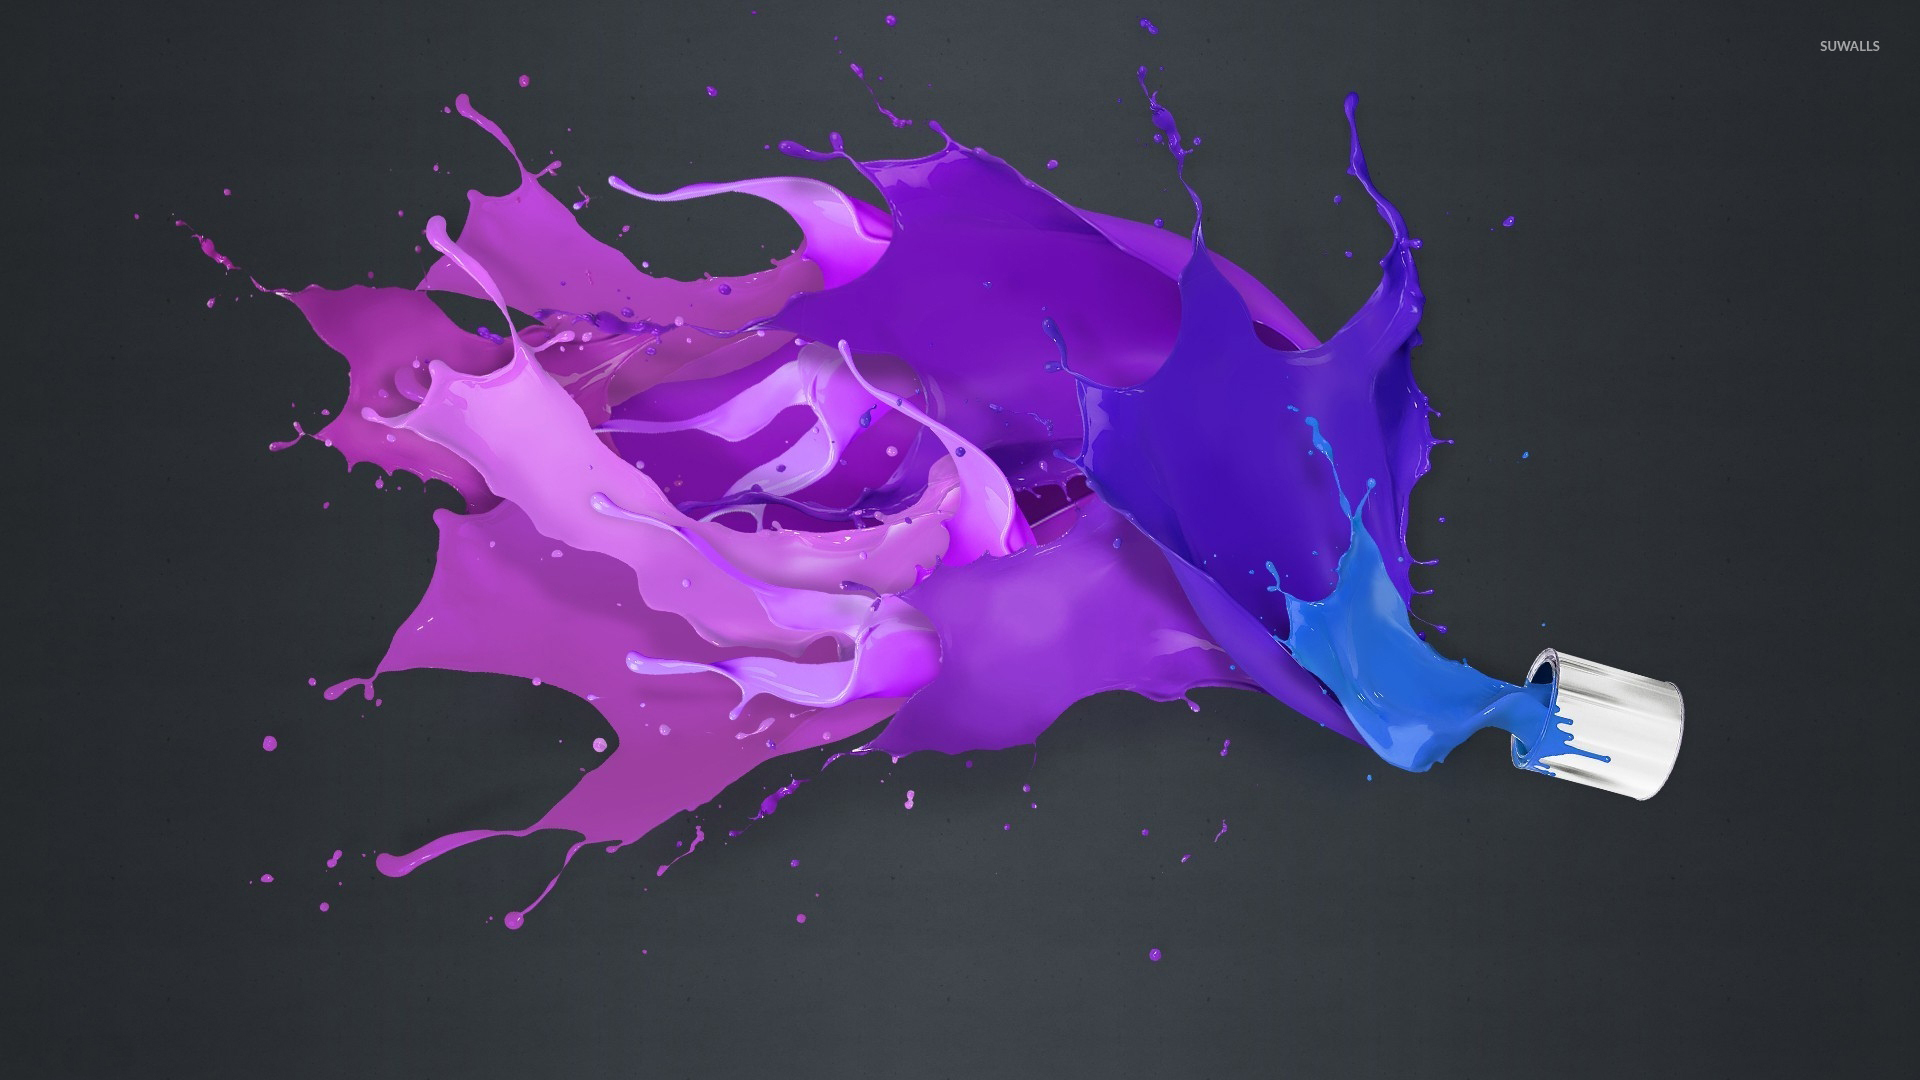 Paint Can Spilling On The Gray Floor Wallpaper 1920x1080 Jpg